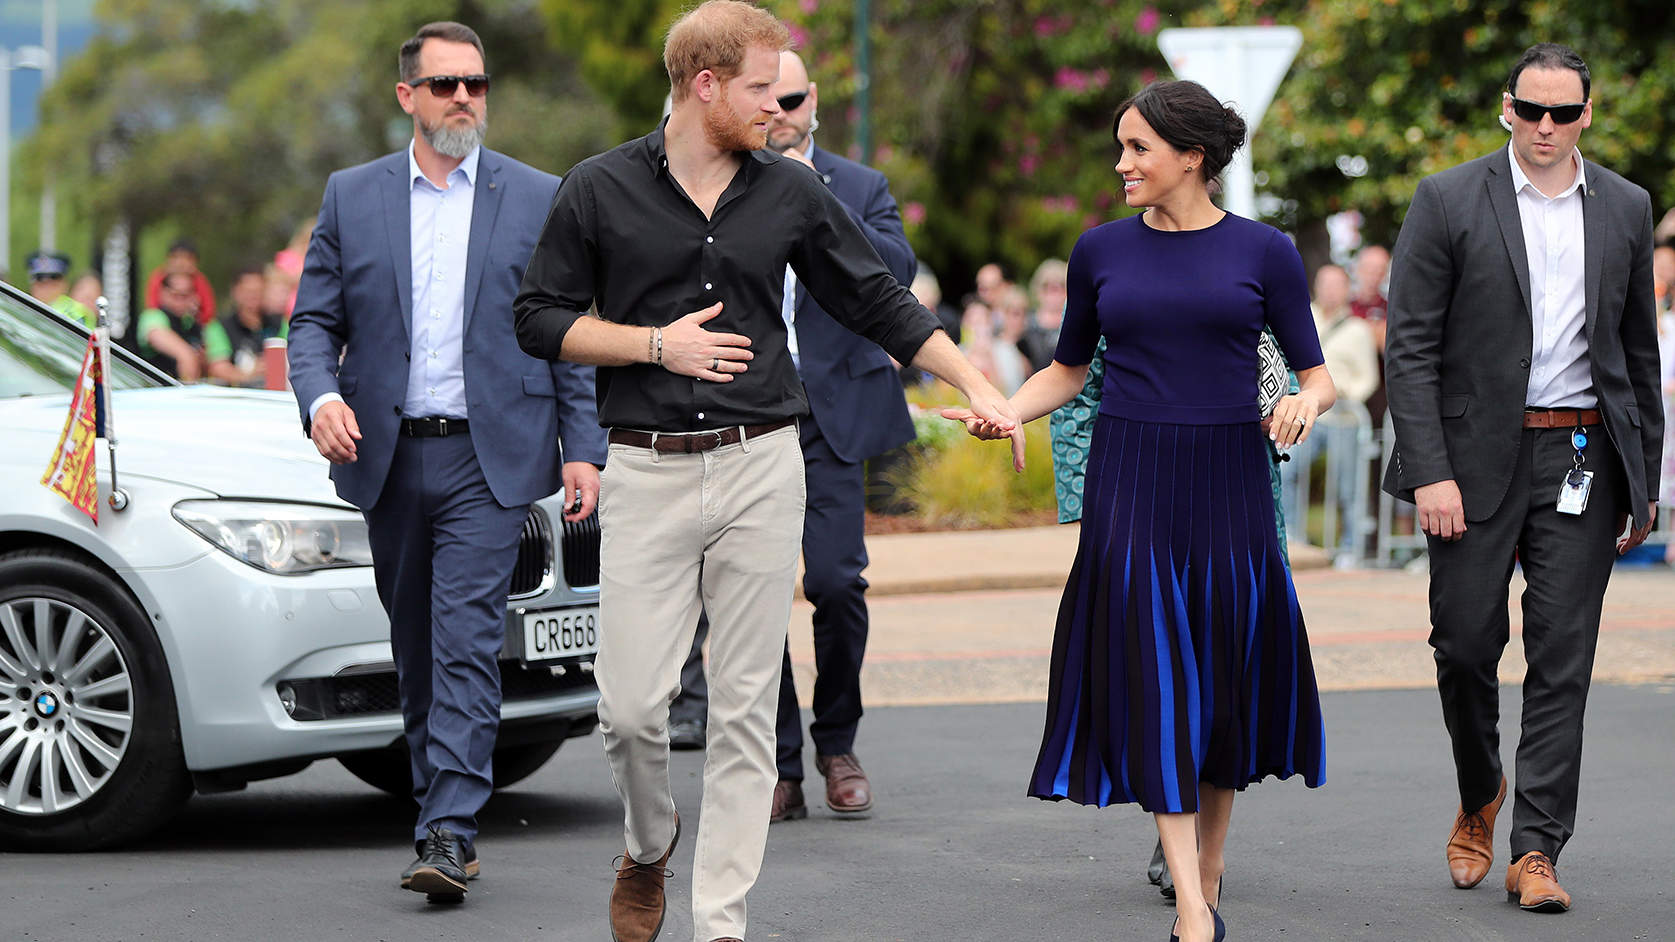 Why People Think Meghan Markle Is Pregnant with Twins